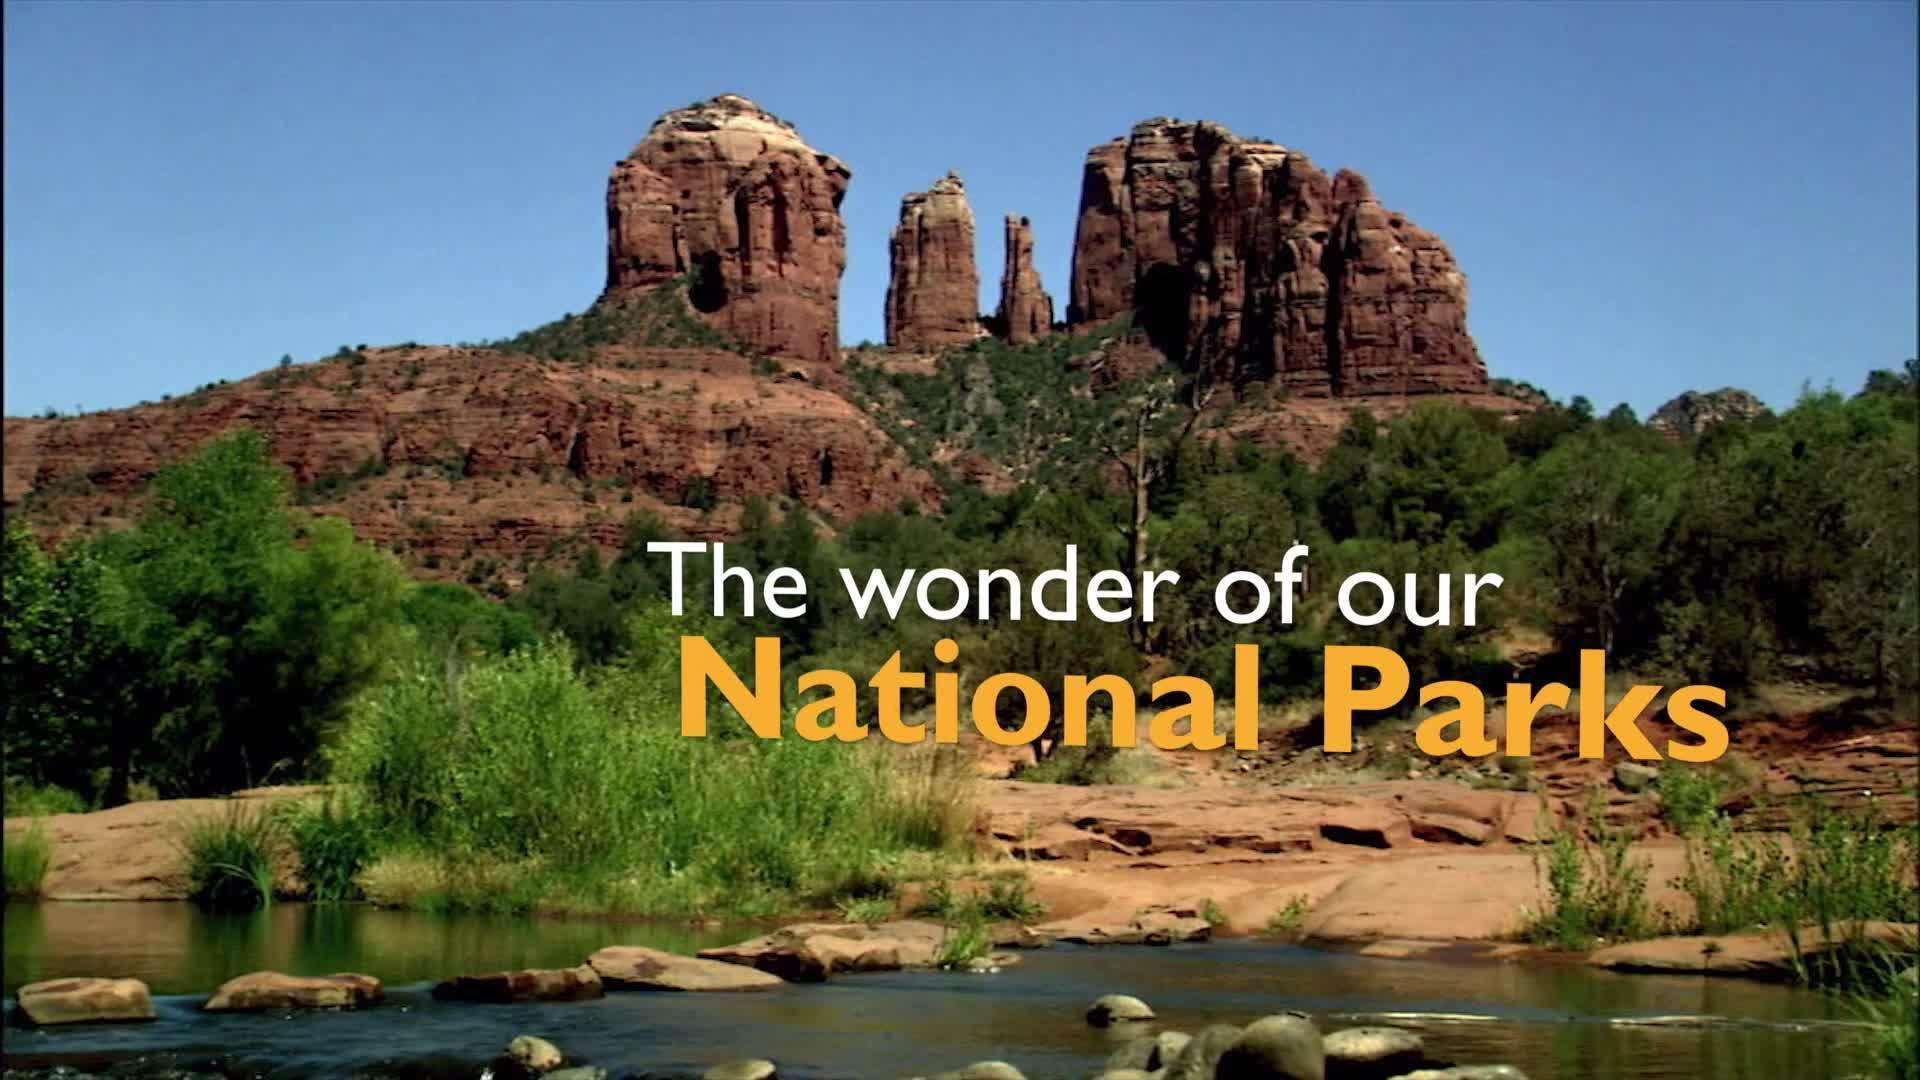 The Wonder of our National Parks